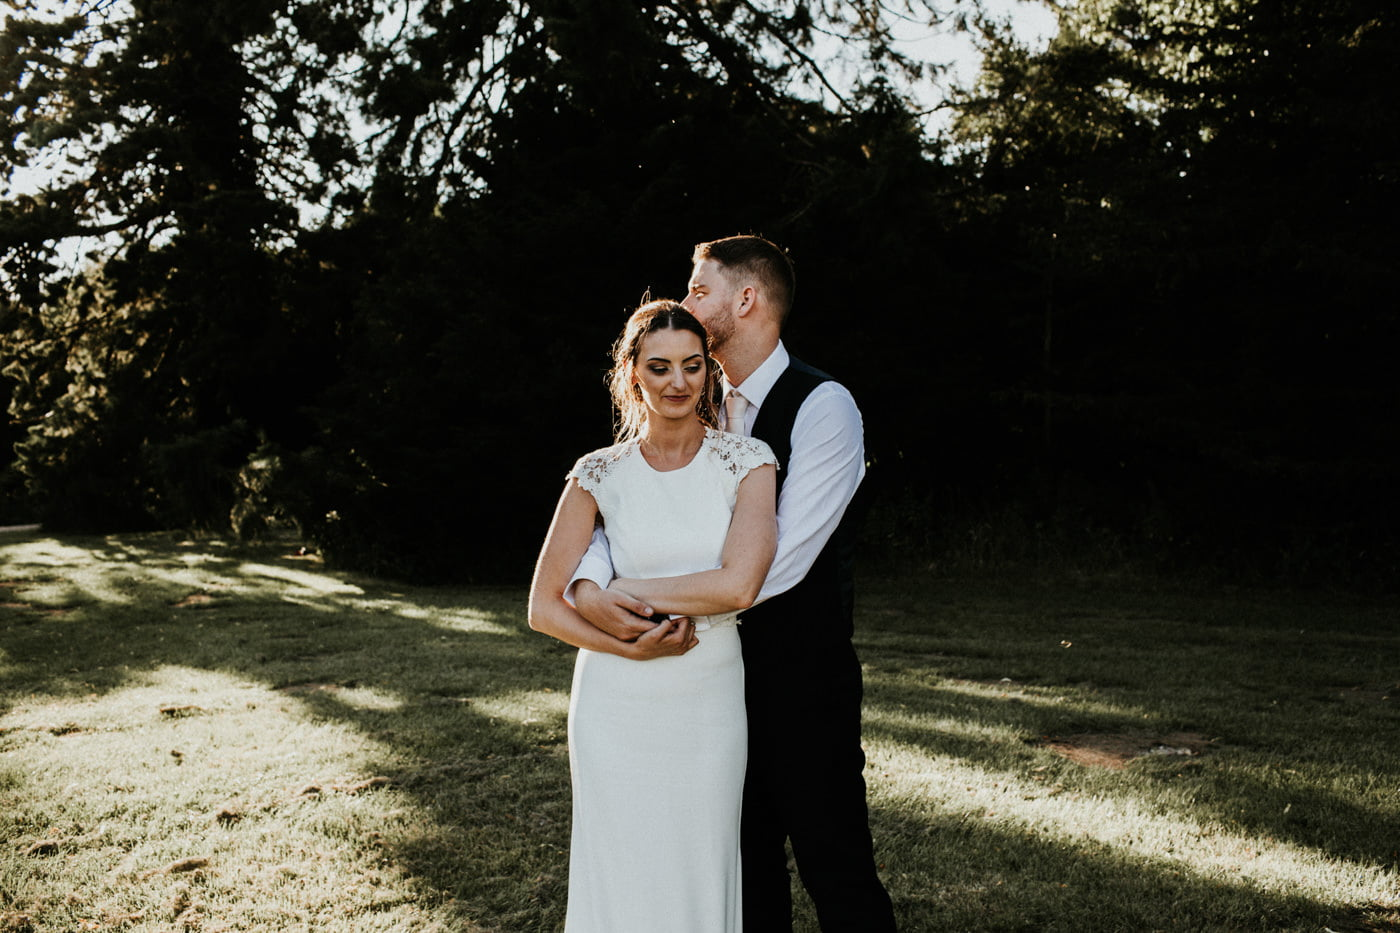 Katy and Adam, Elmhay Park, Somerset 27